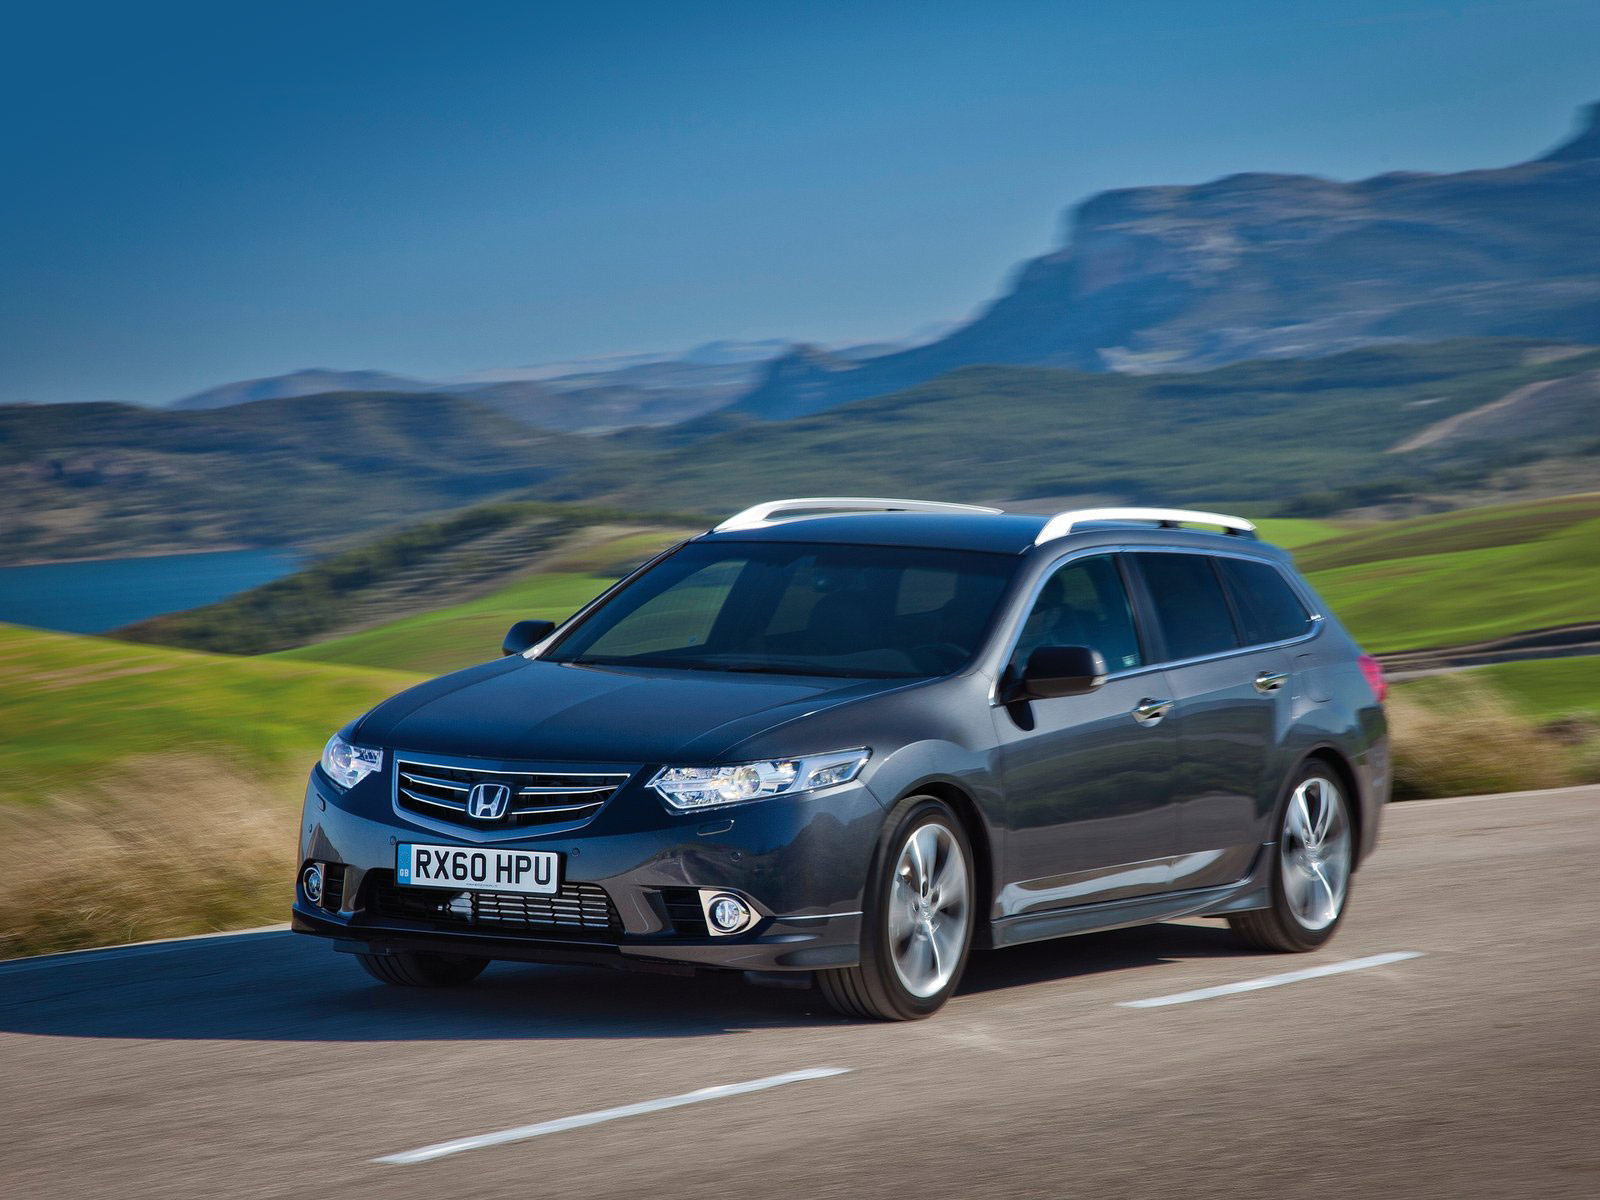 The Revised Honda Accord Sedan And Tourer Models Made Their Debut At The  2011 Geneva ...